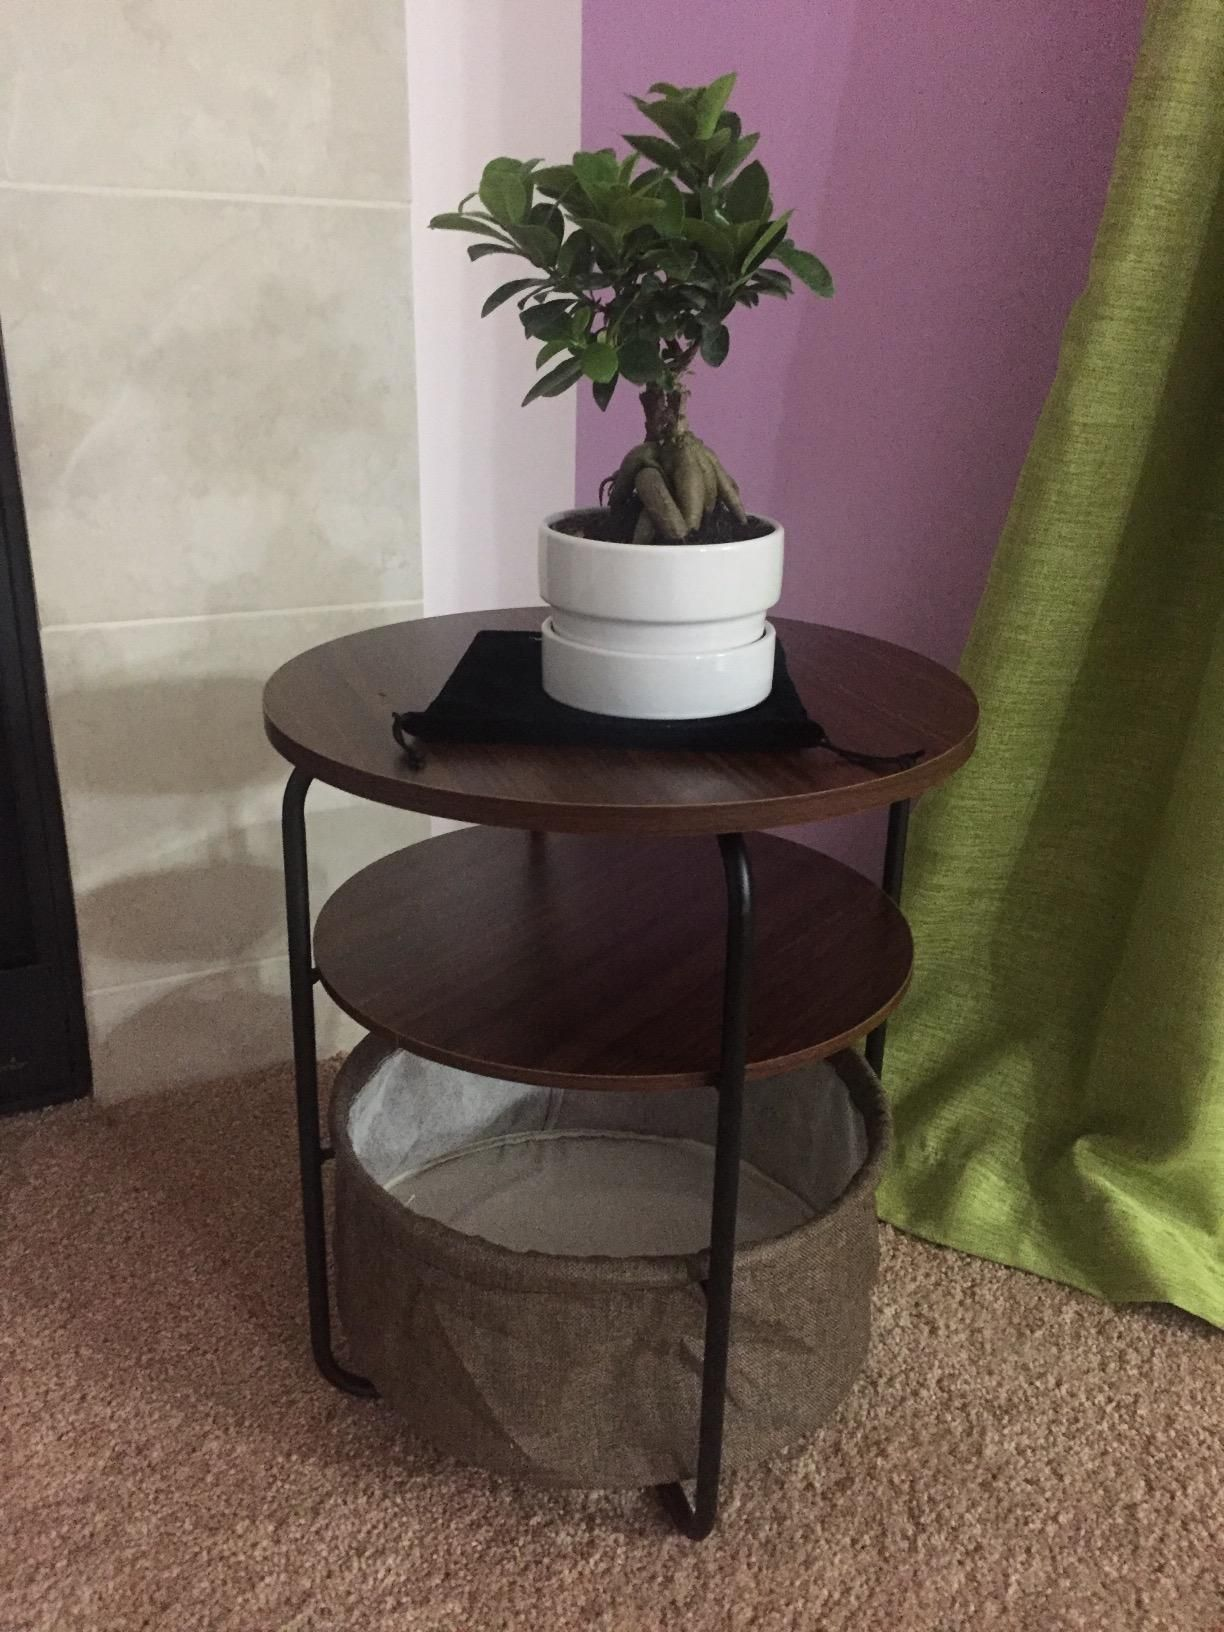 Amazoncom Lifewit 3tier Round Side End Table with Storage Basket